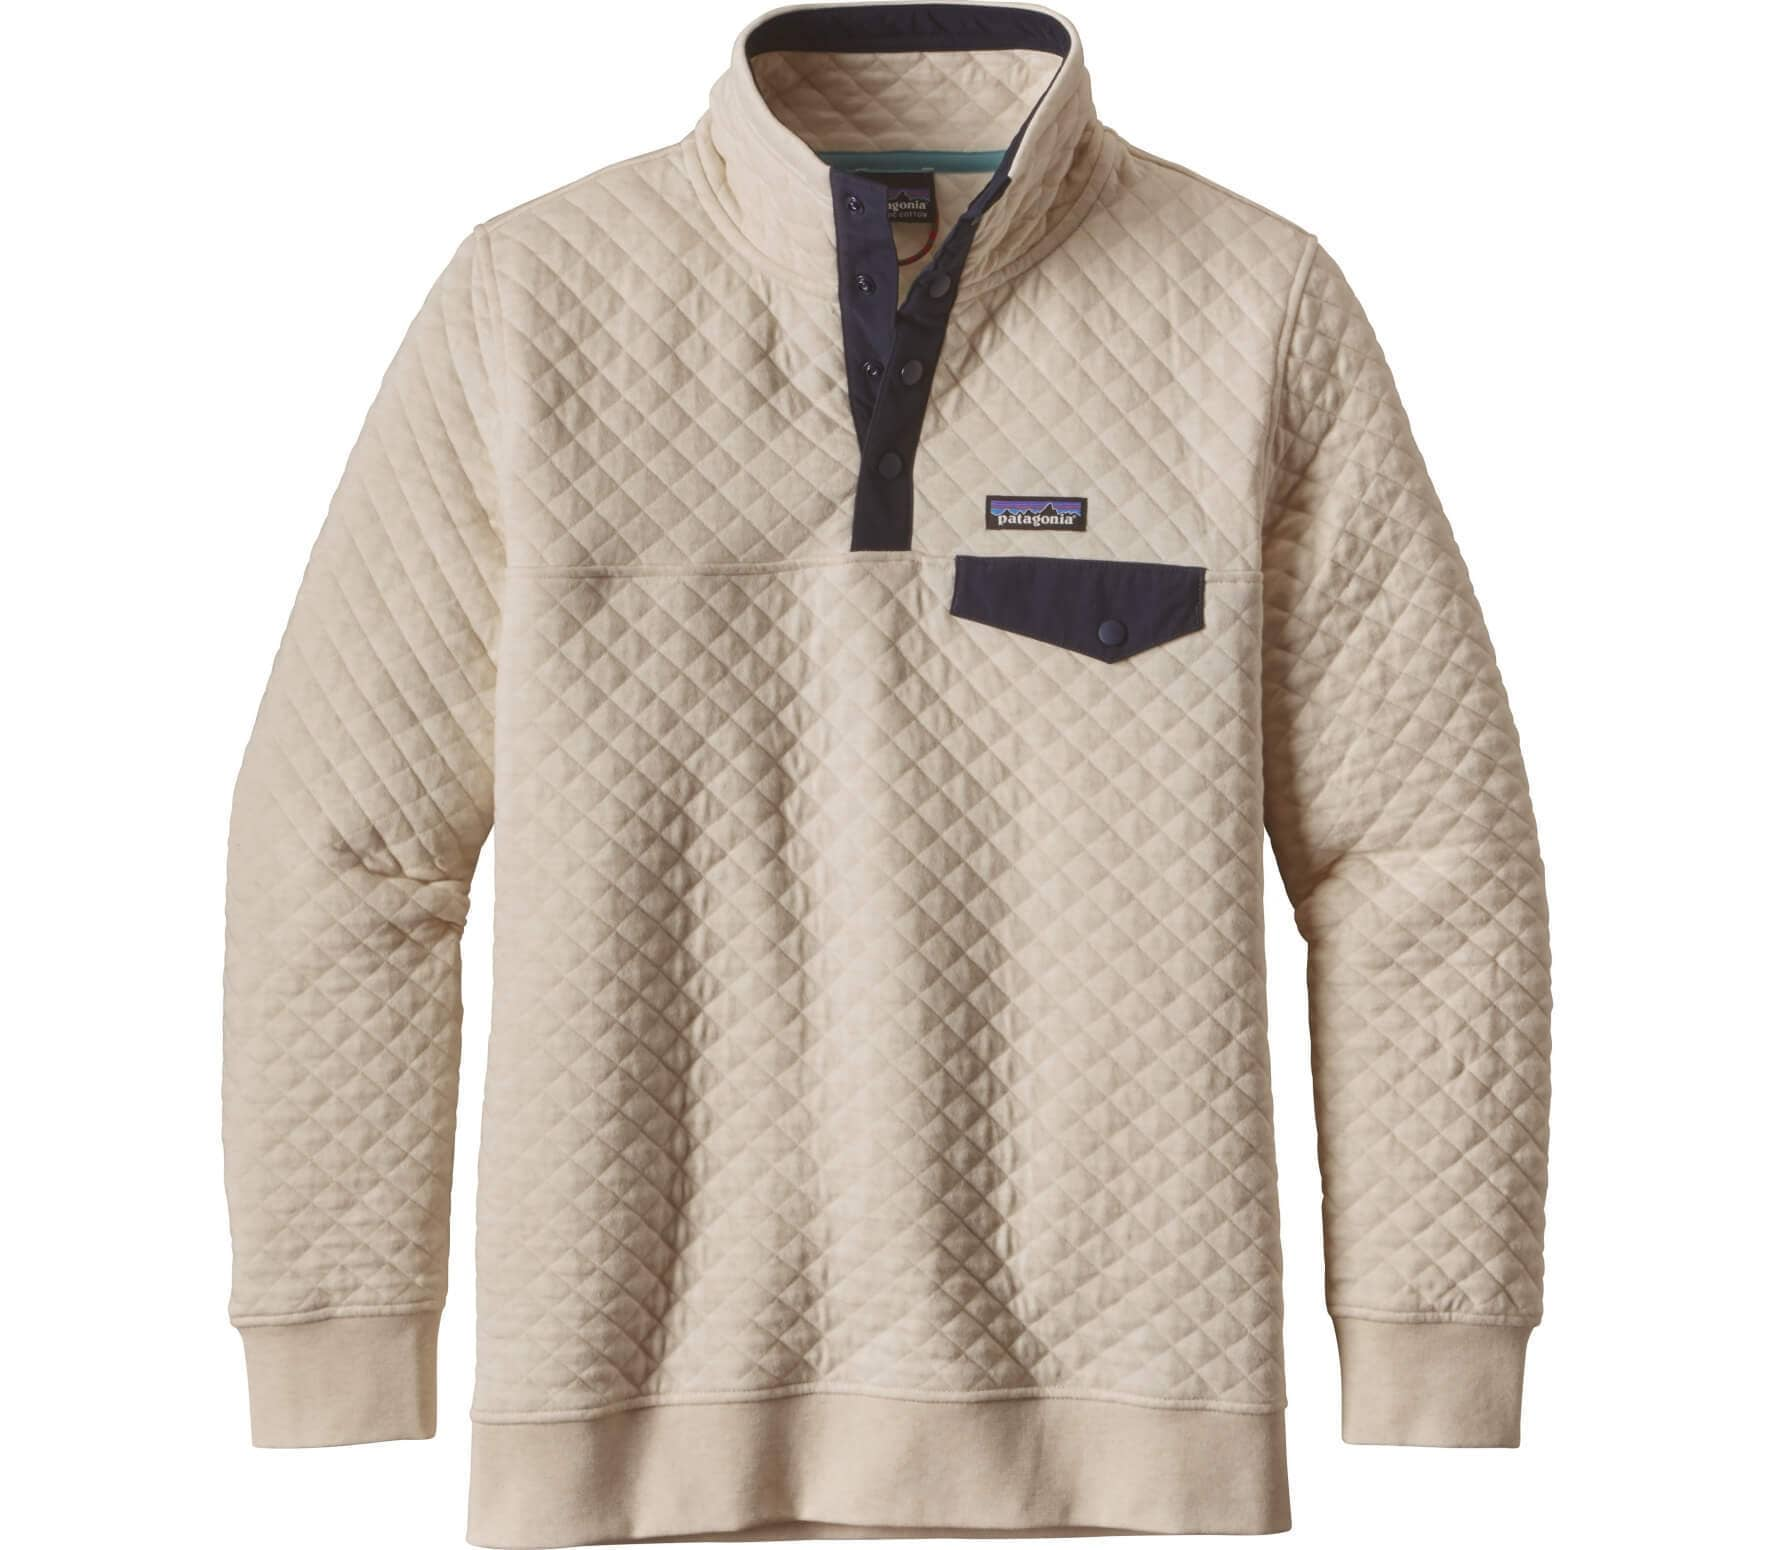 finest selection a443a 75e23 Patagonia - Cotton Quilt Snap-T women's pullover (white)